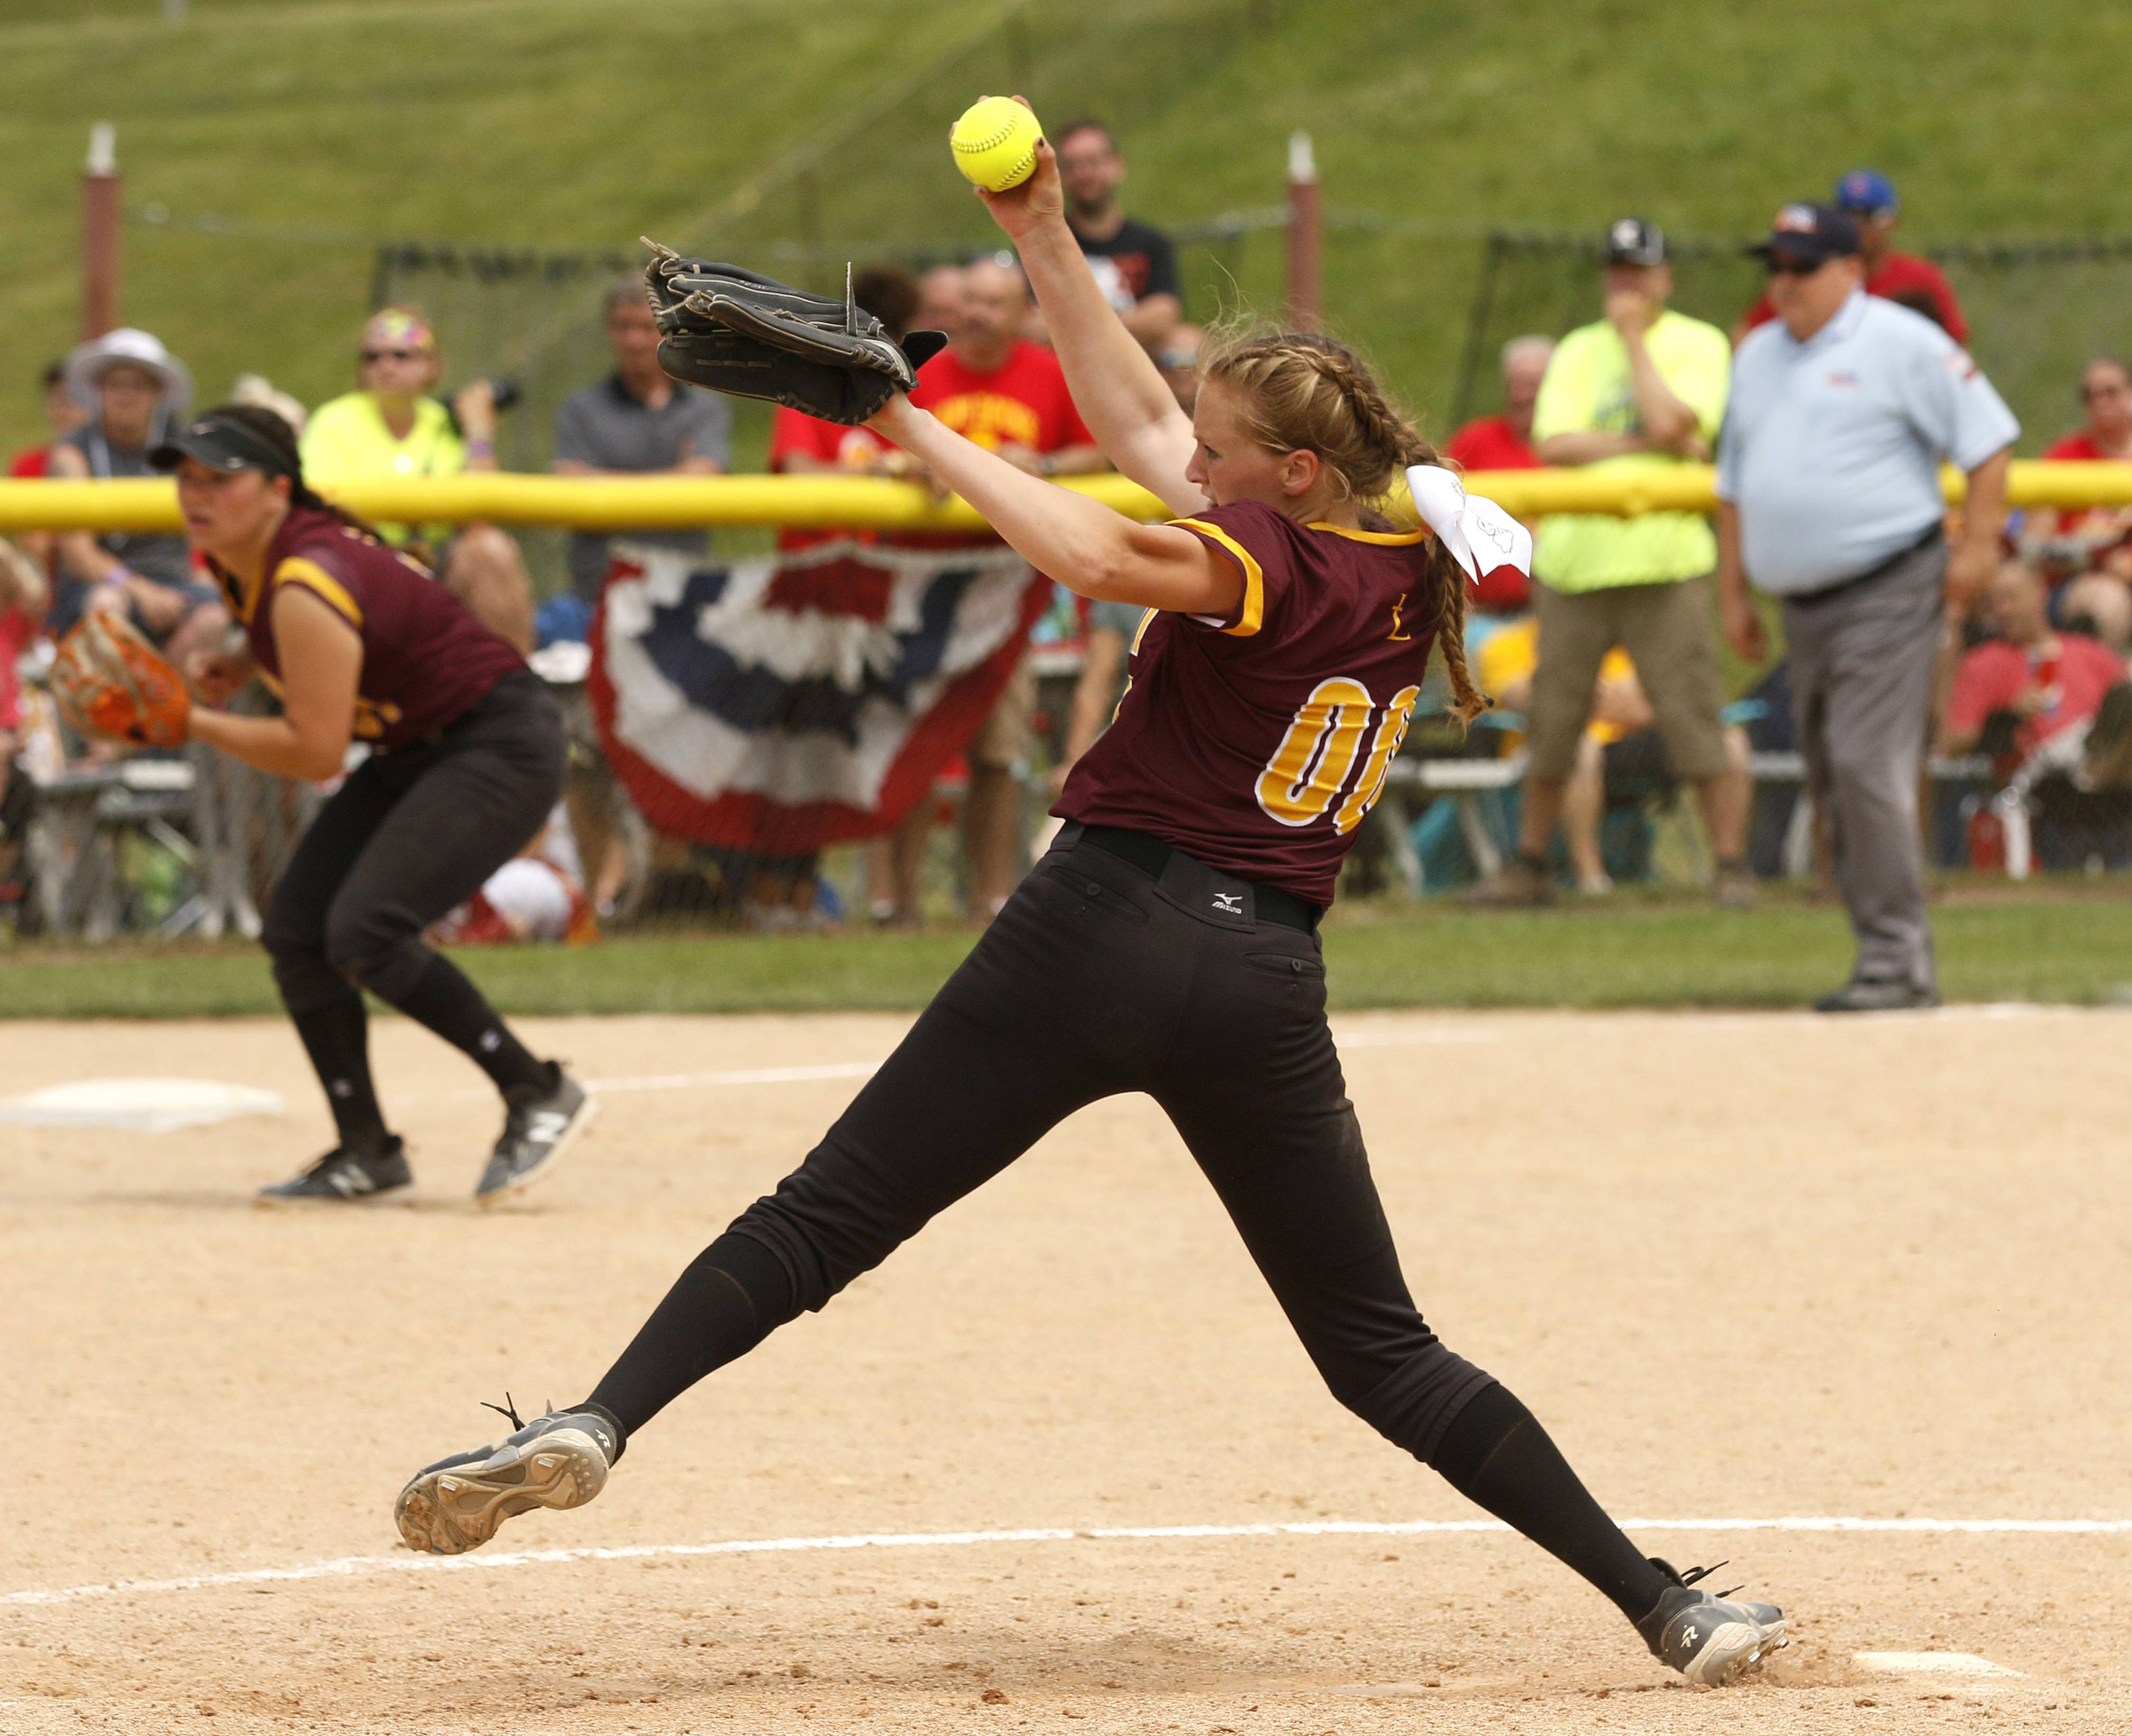 Montini Catholic pitcher Allyson Dilday throws to the plate in the seventh inning against Kaneland.